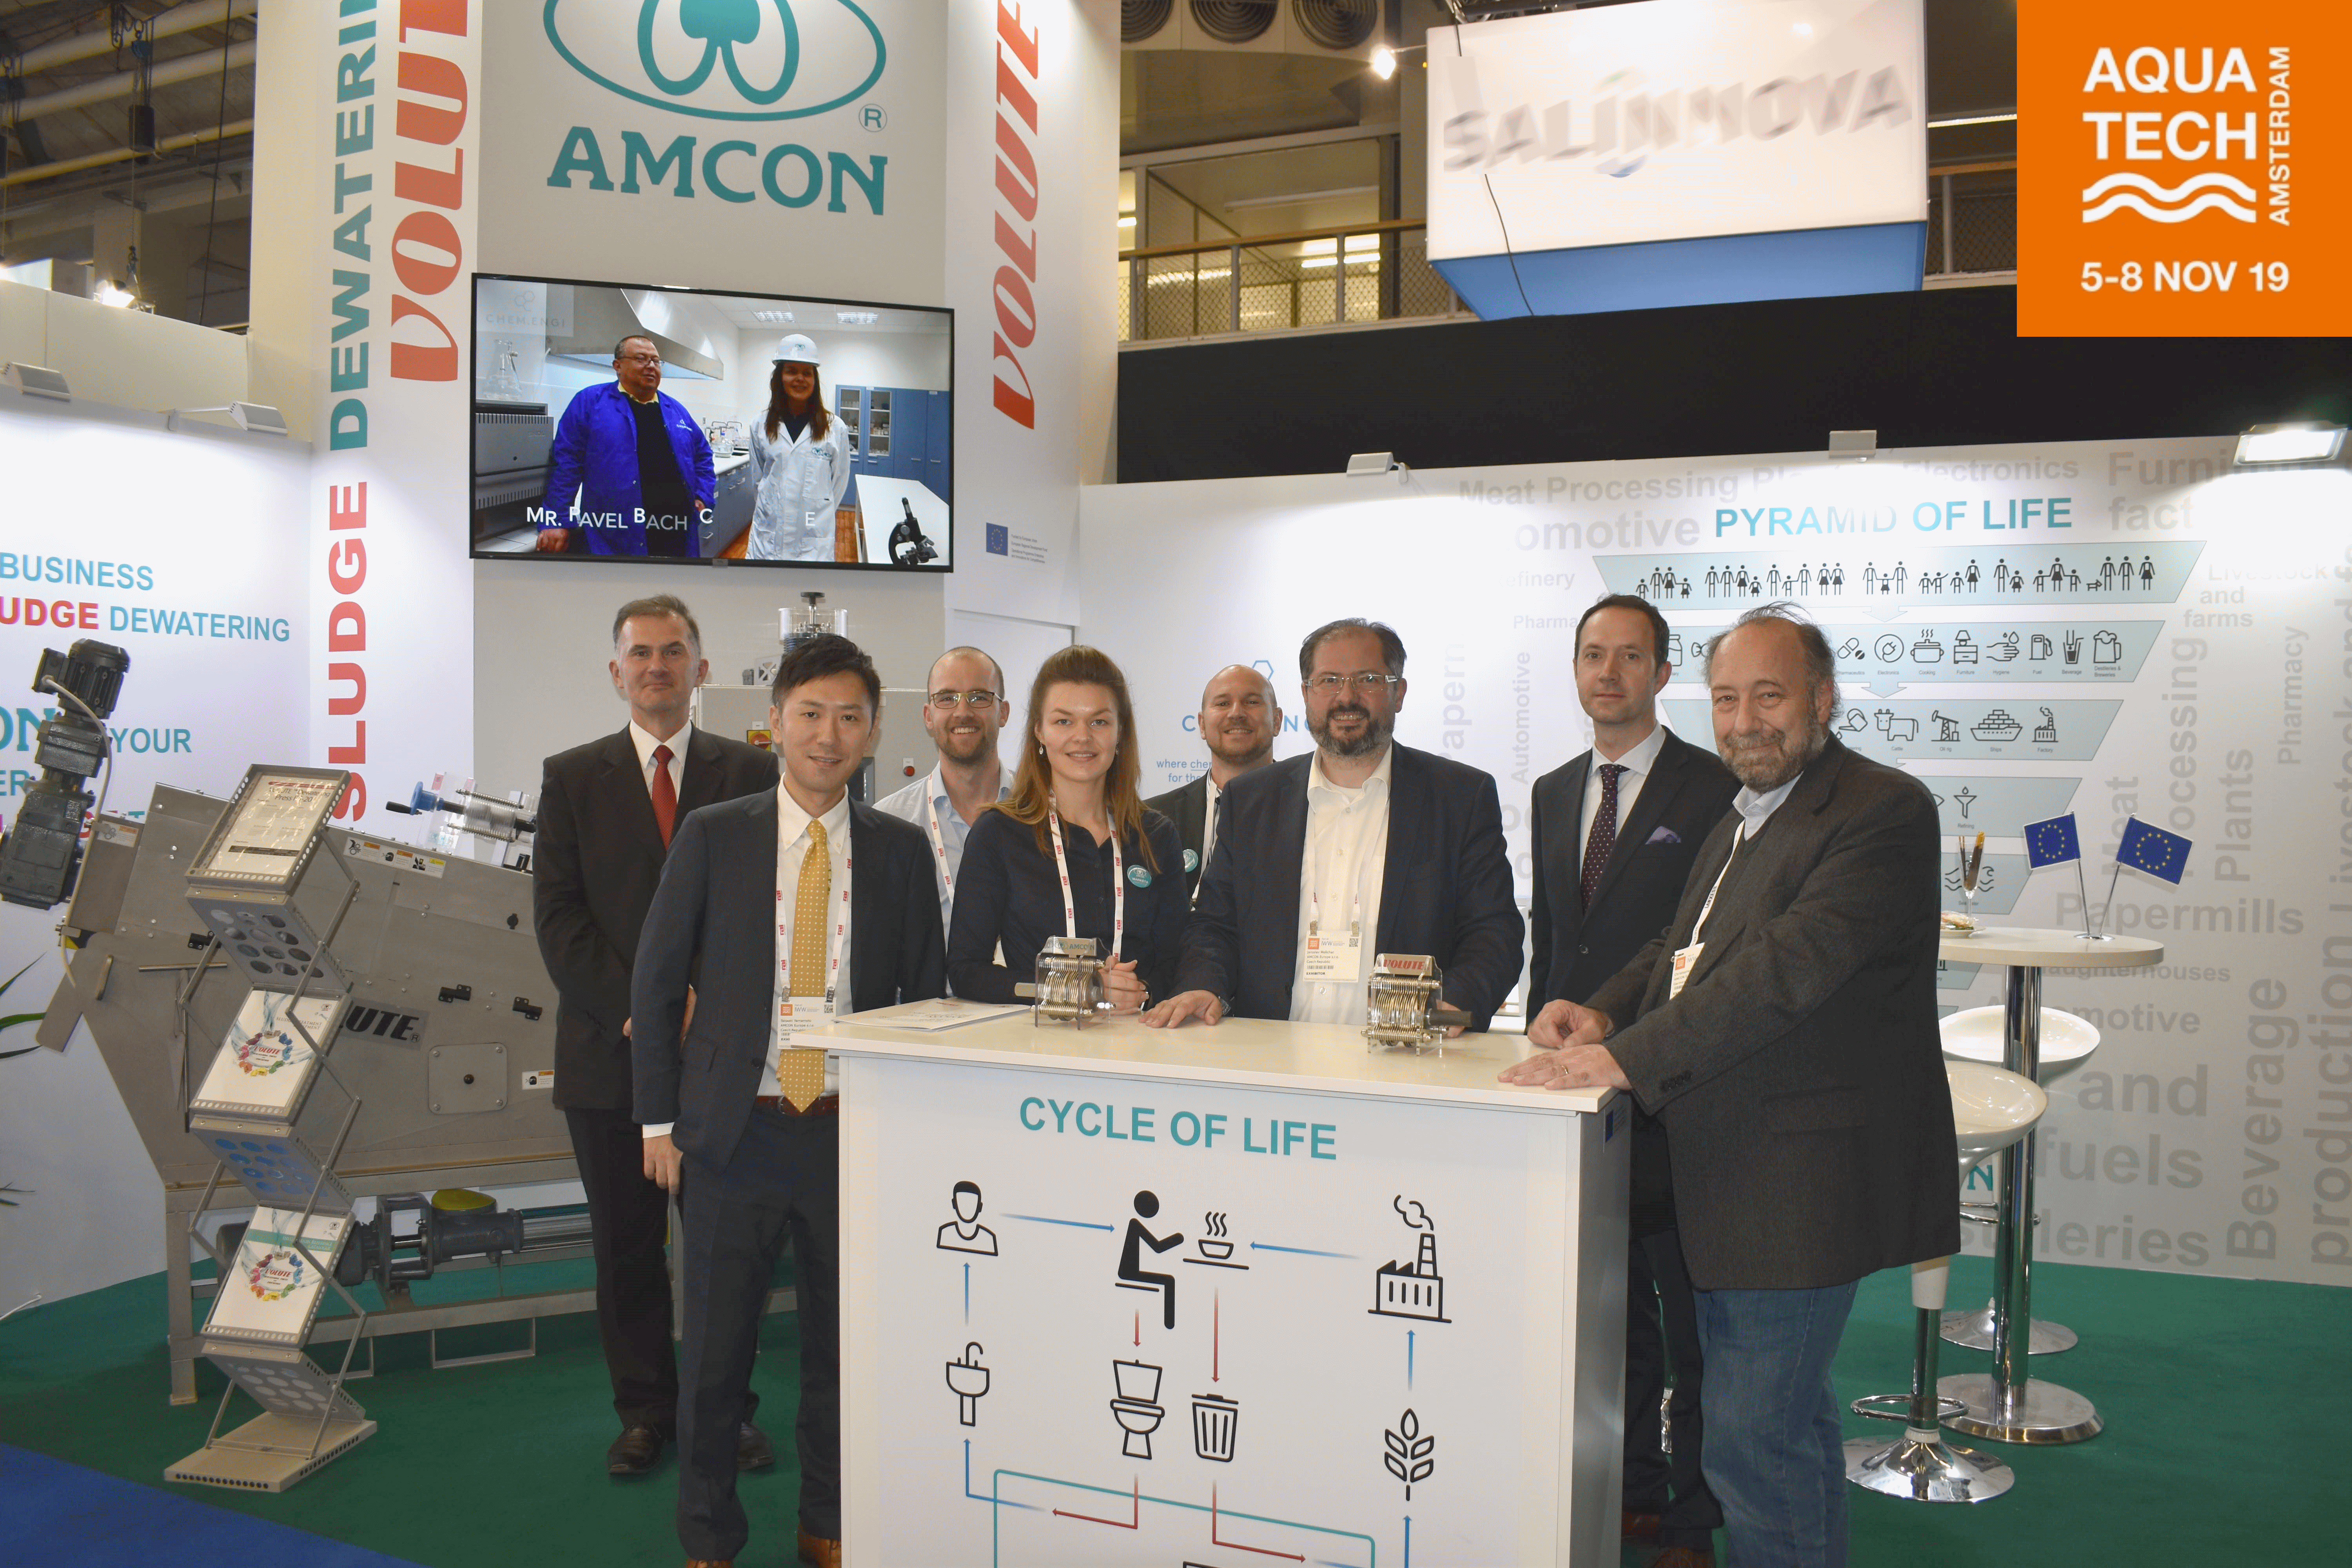 AMCON Team at Aquatech 2019.